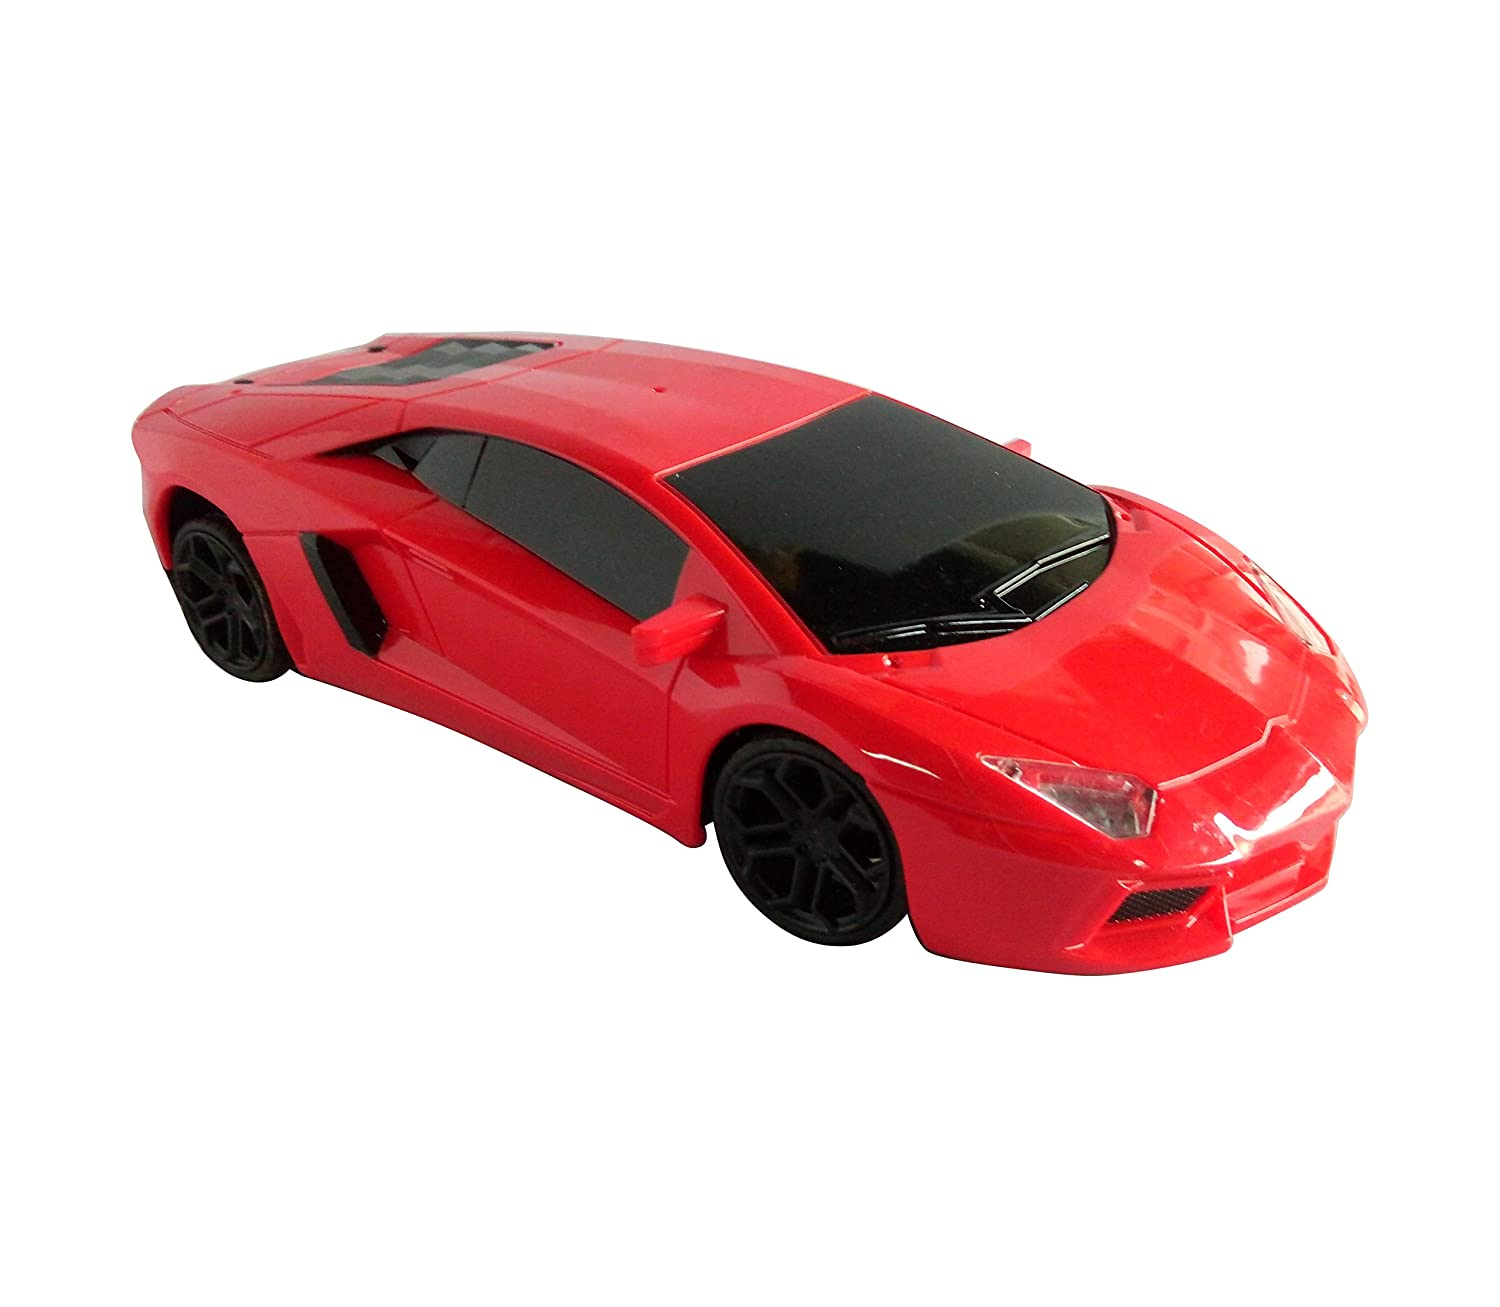 1001 - Red remote control car By Amazon @ Rs.425